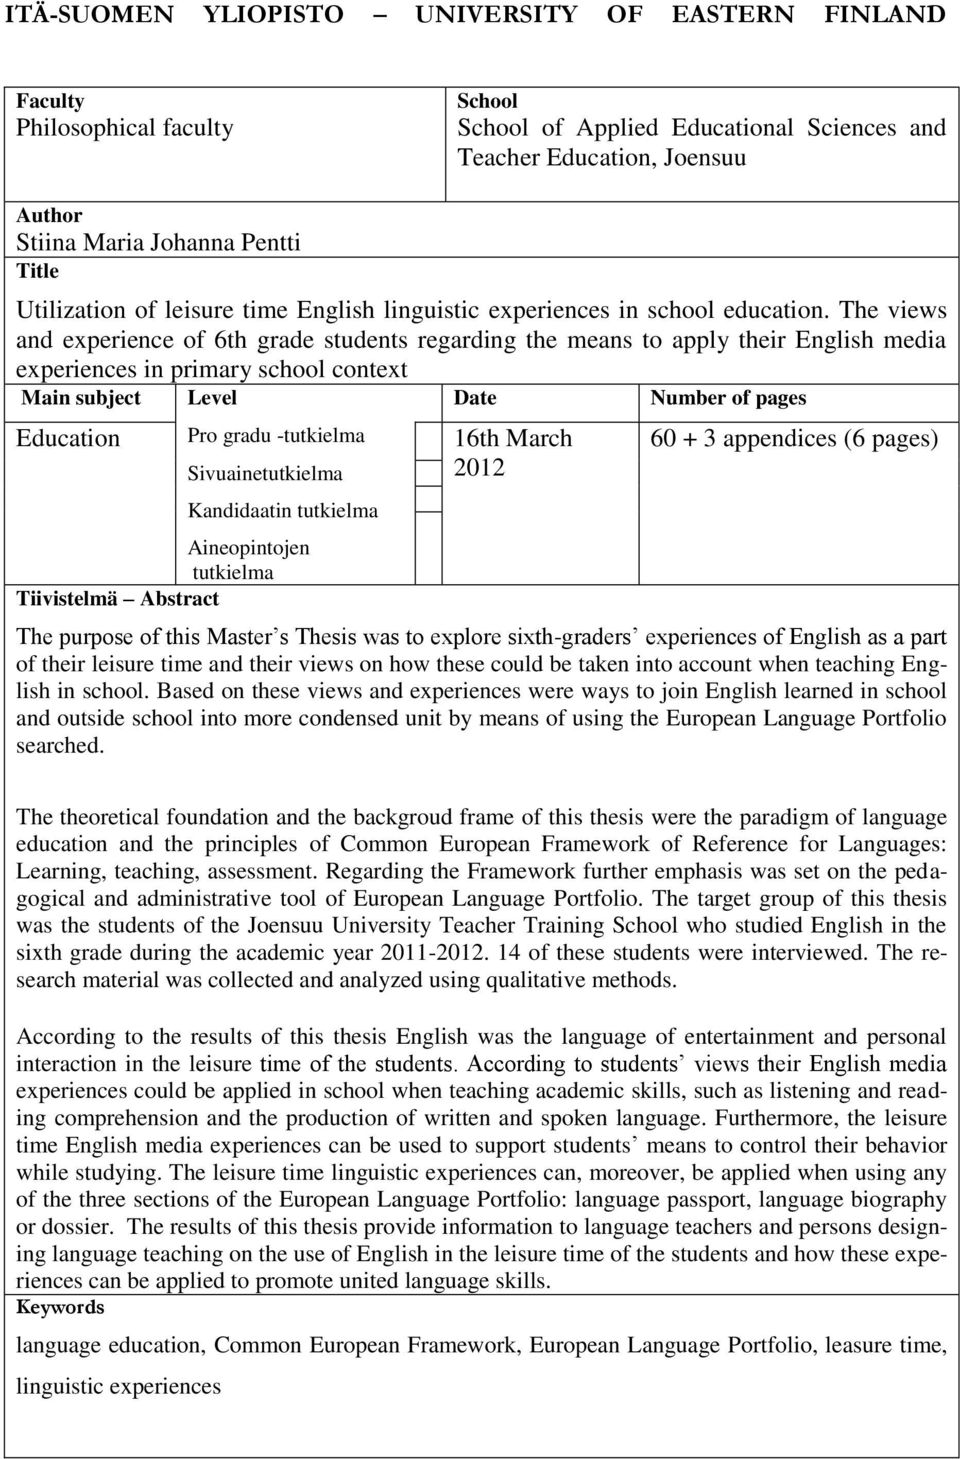 The views and experience of 6th grade students regarding the means to apply their English media experiences in primary school context Main subject Level Date Number of pages Education Pro gradu